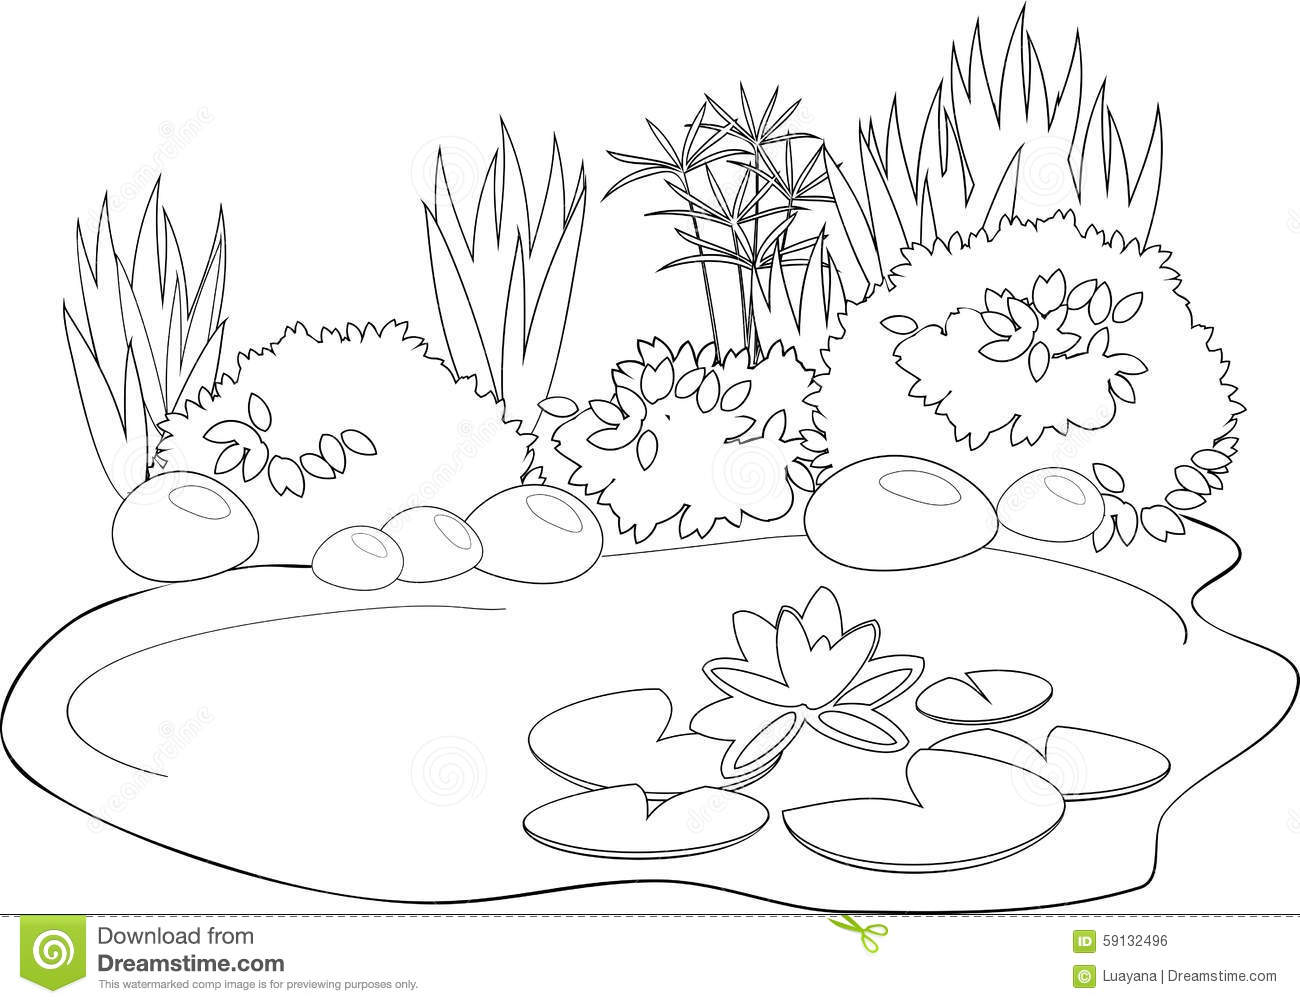 Leaf Impression Kindergarten Worksheet